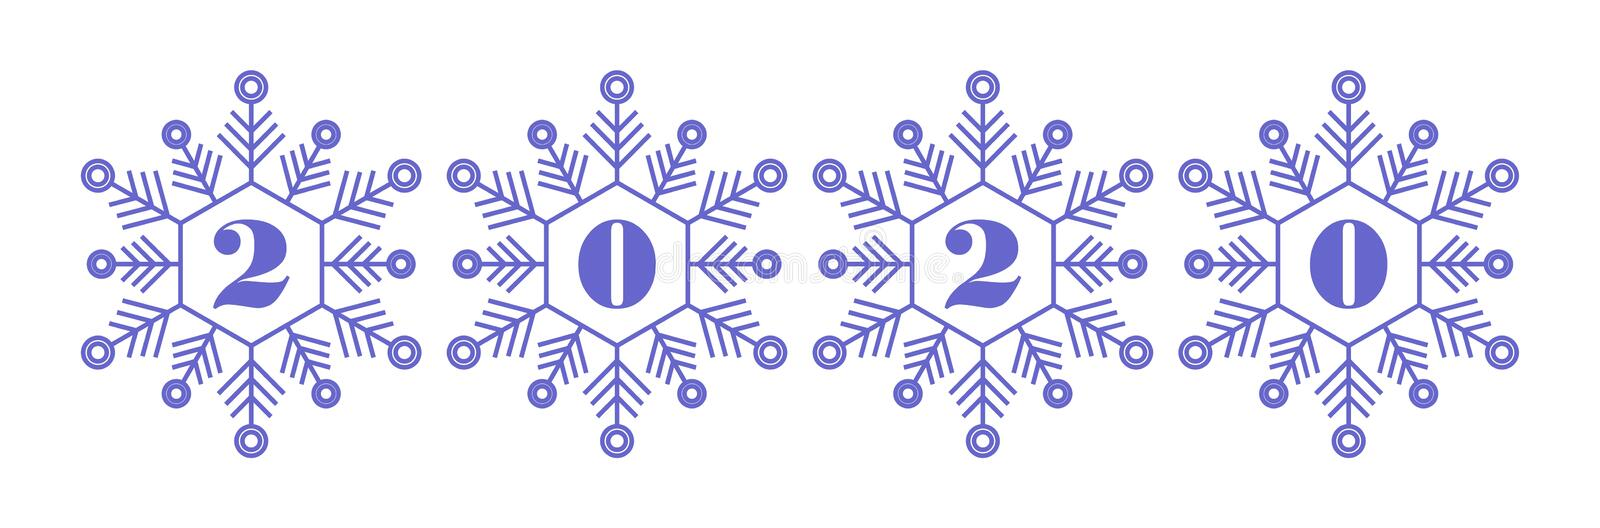 2020 year vector icon blue snowflakes white background royalty free stock photography